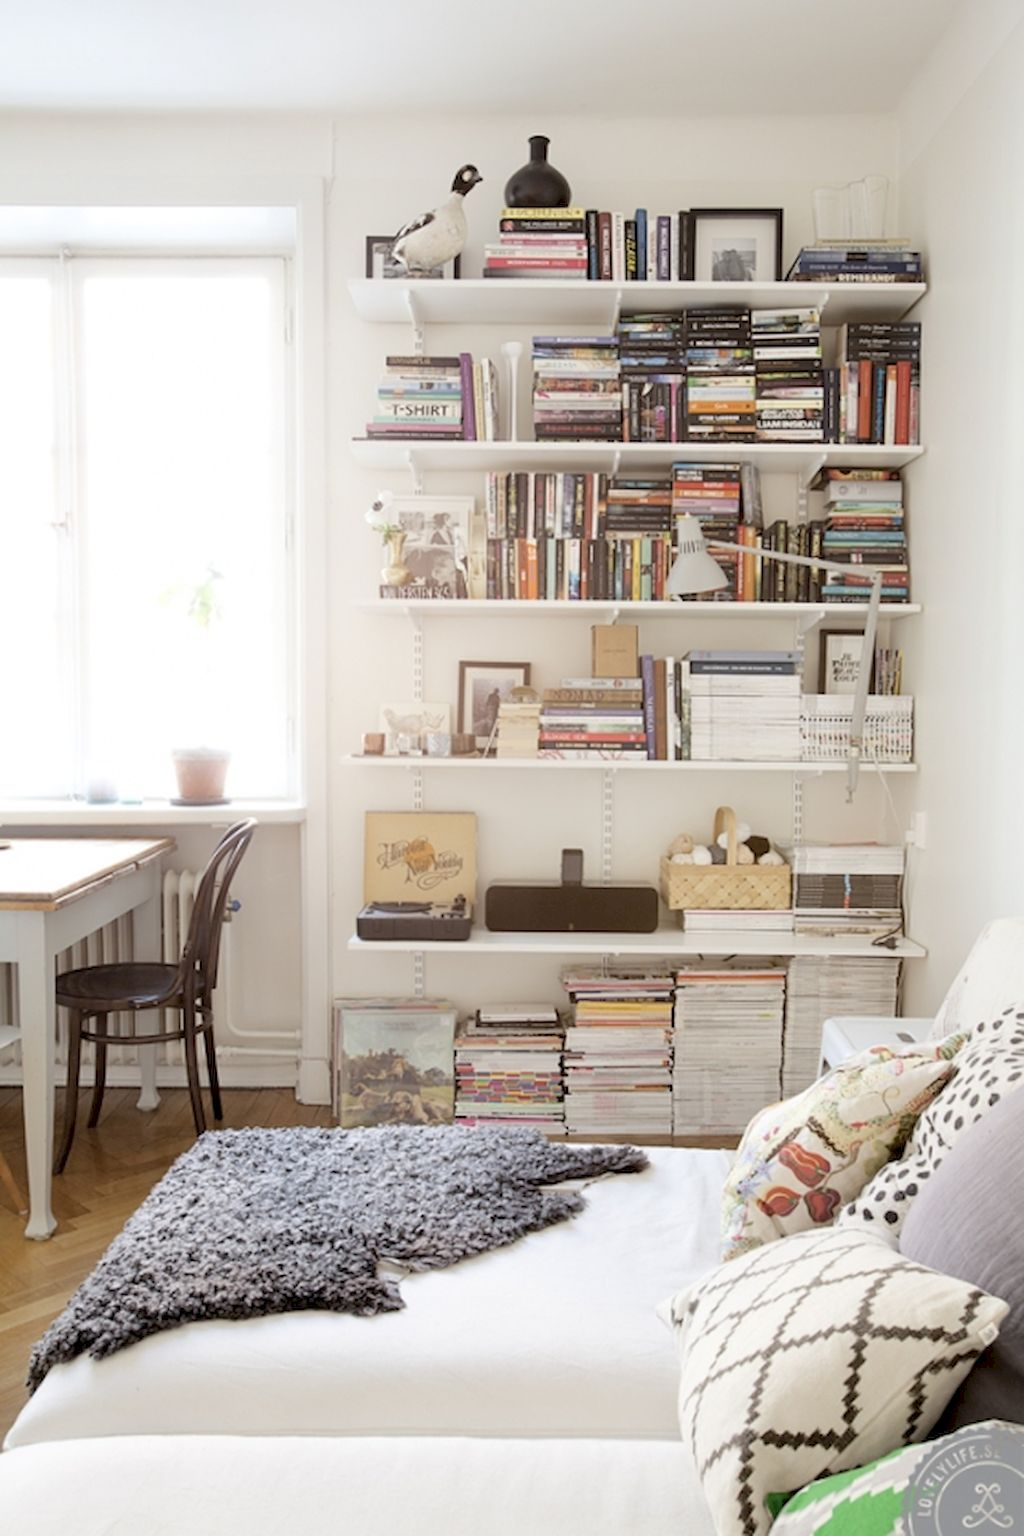 Cool 60 Small Apartment Decorating Ideas On A Budget White Shelves Bookshelves